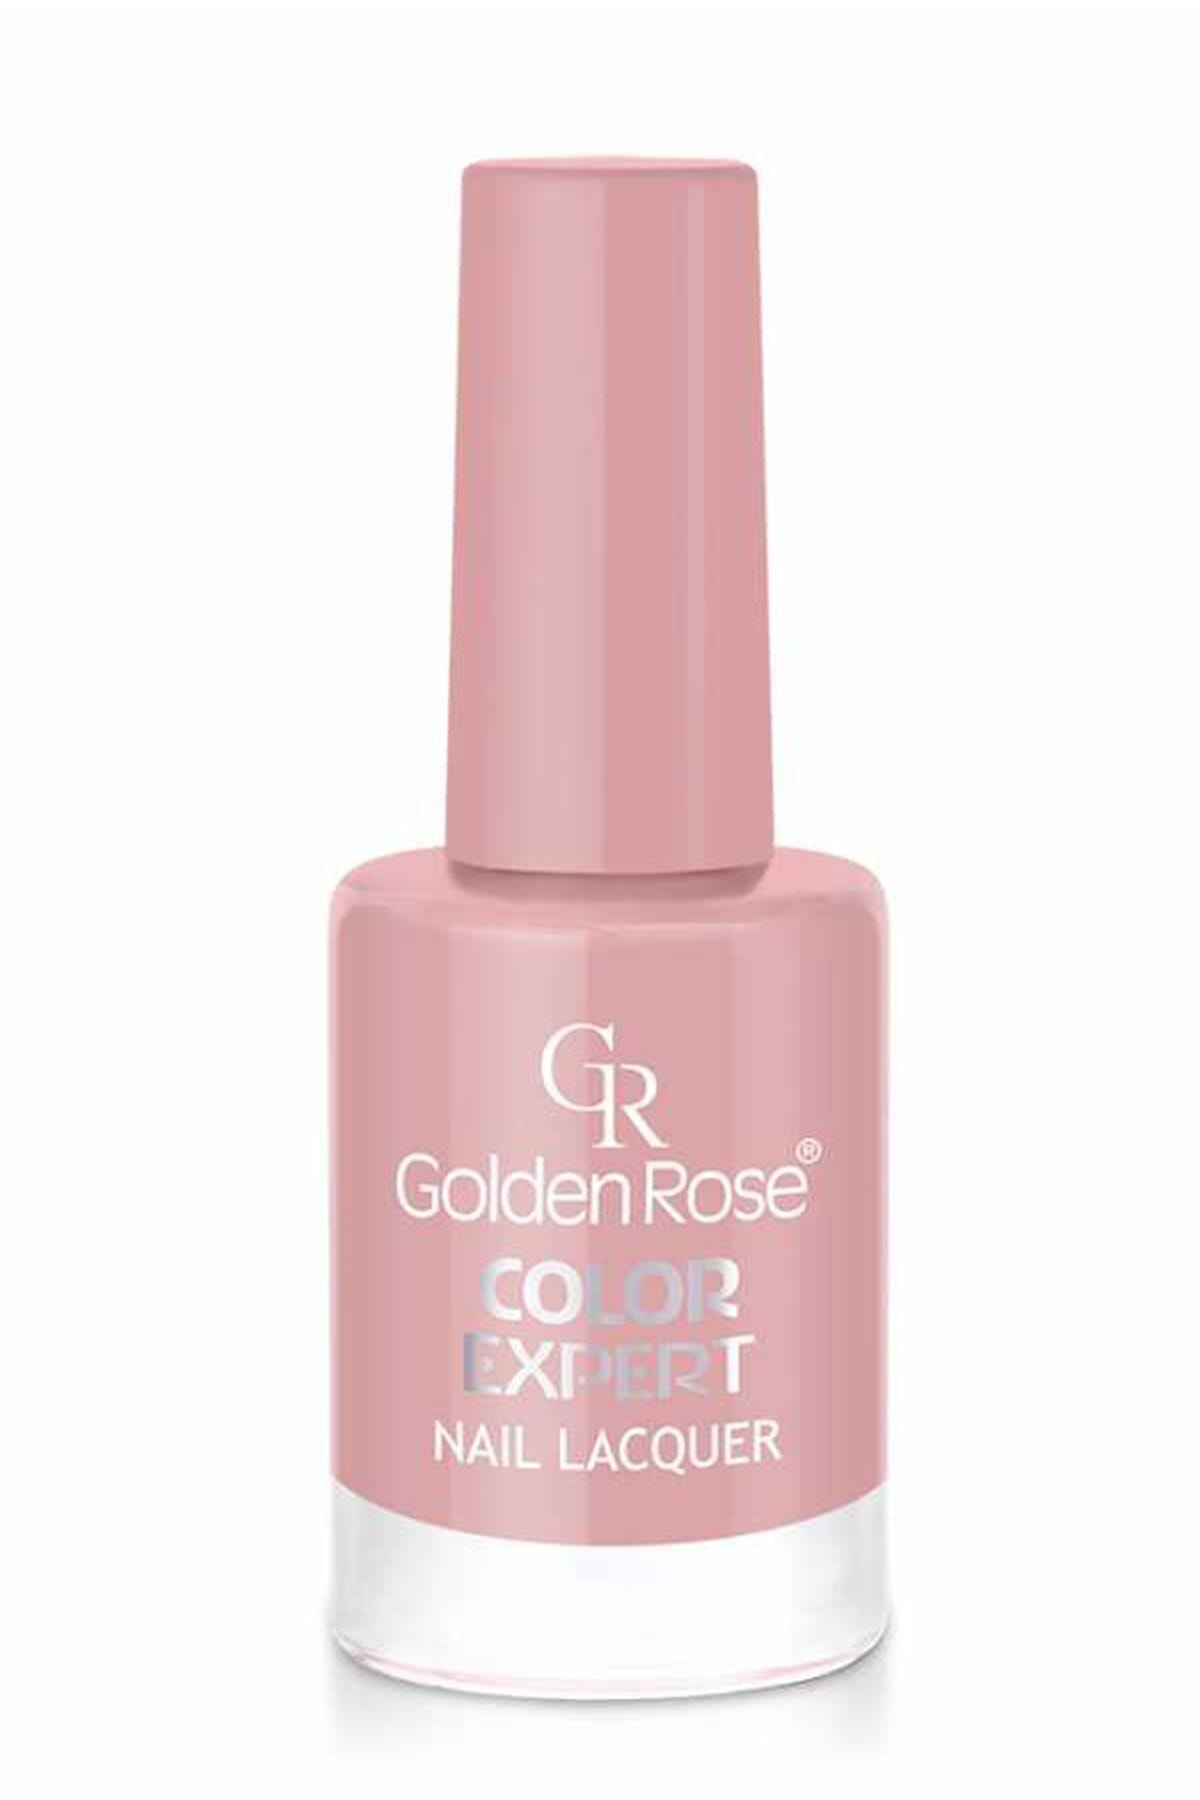 Golden Rose Oje - Color Expert Nail Lacquer No: 09 8691190703097 1